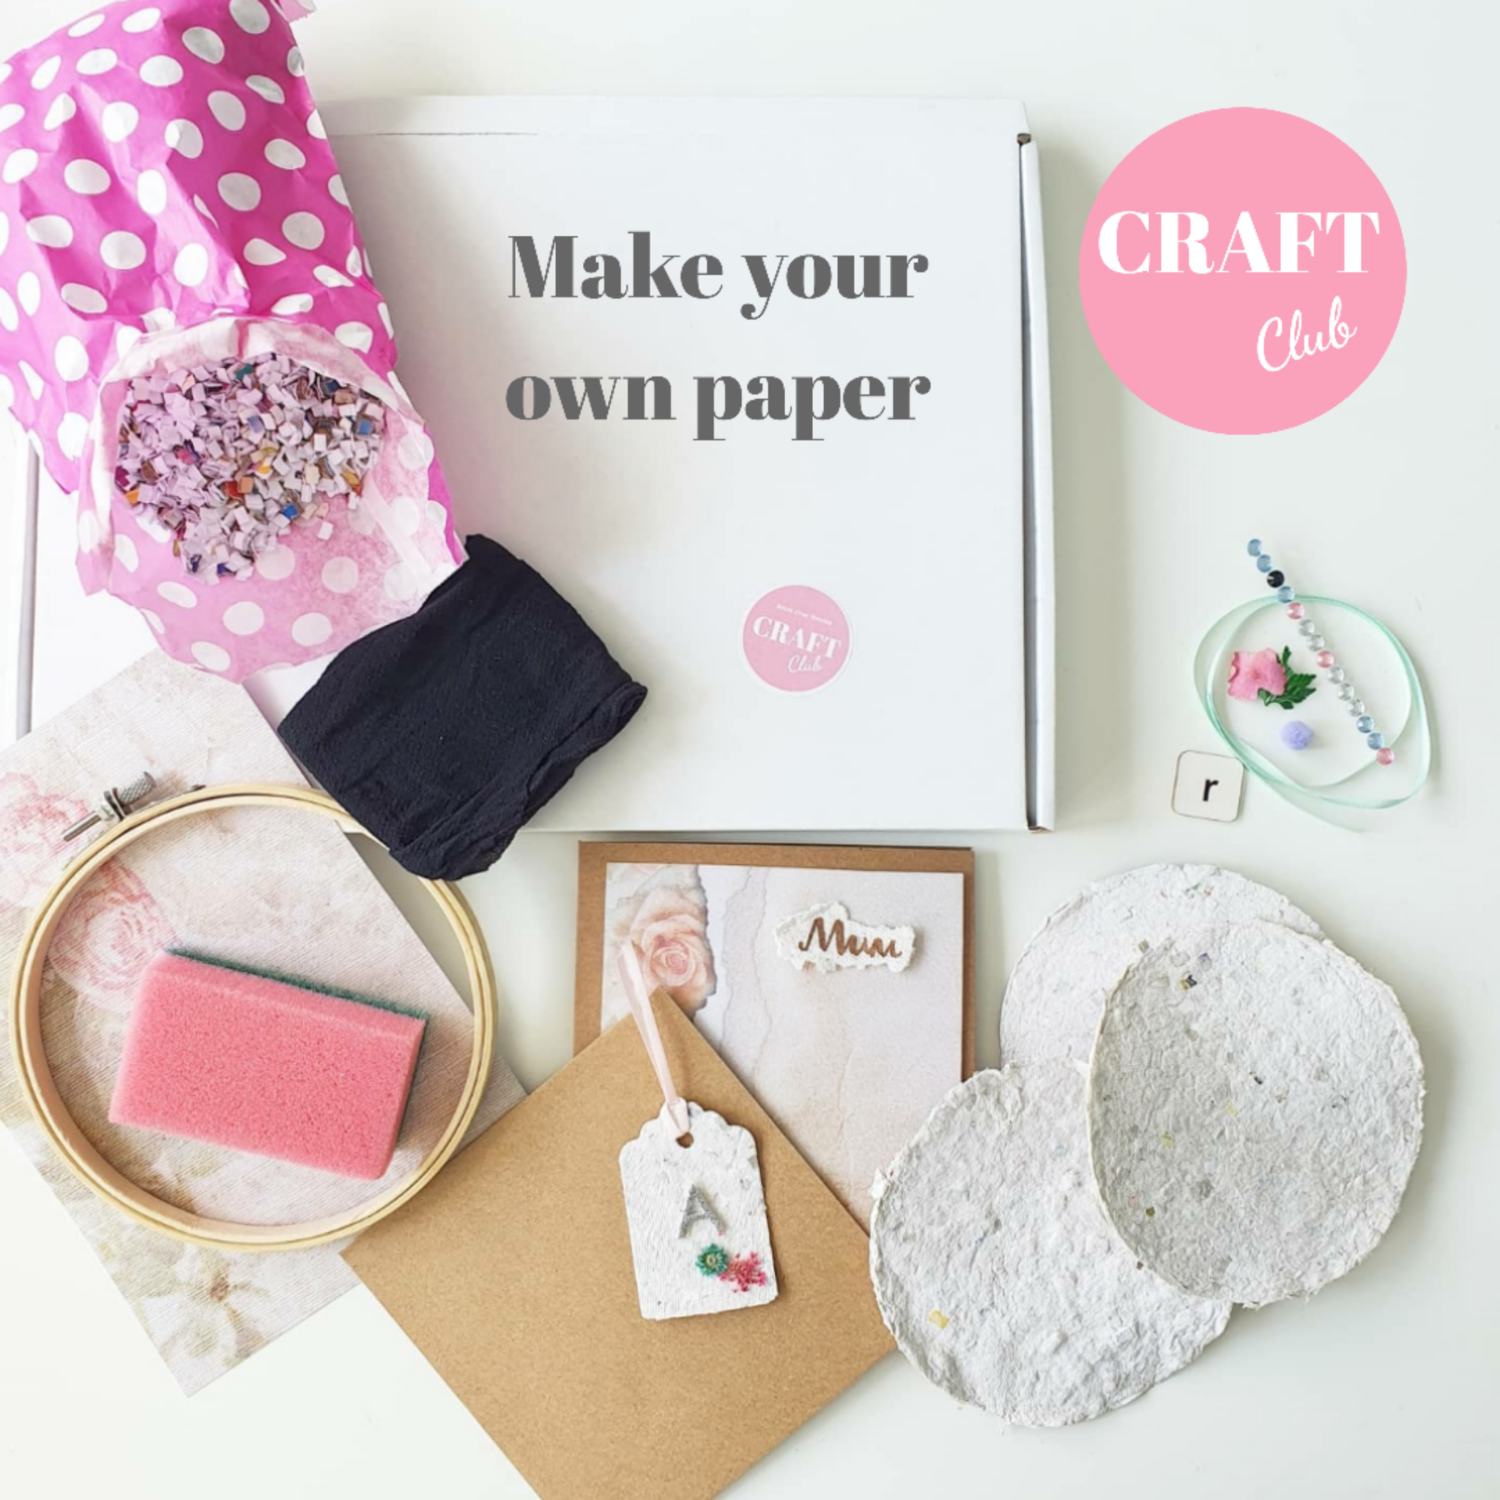 Make Your Own Paper! - AUGUST CRAFT CLUB - free UK postage